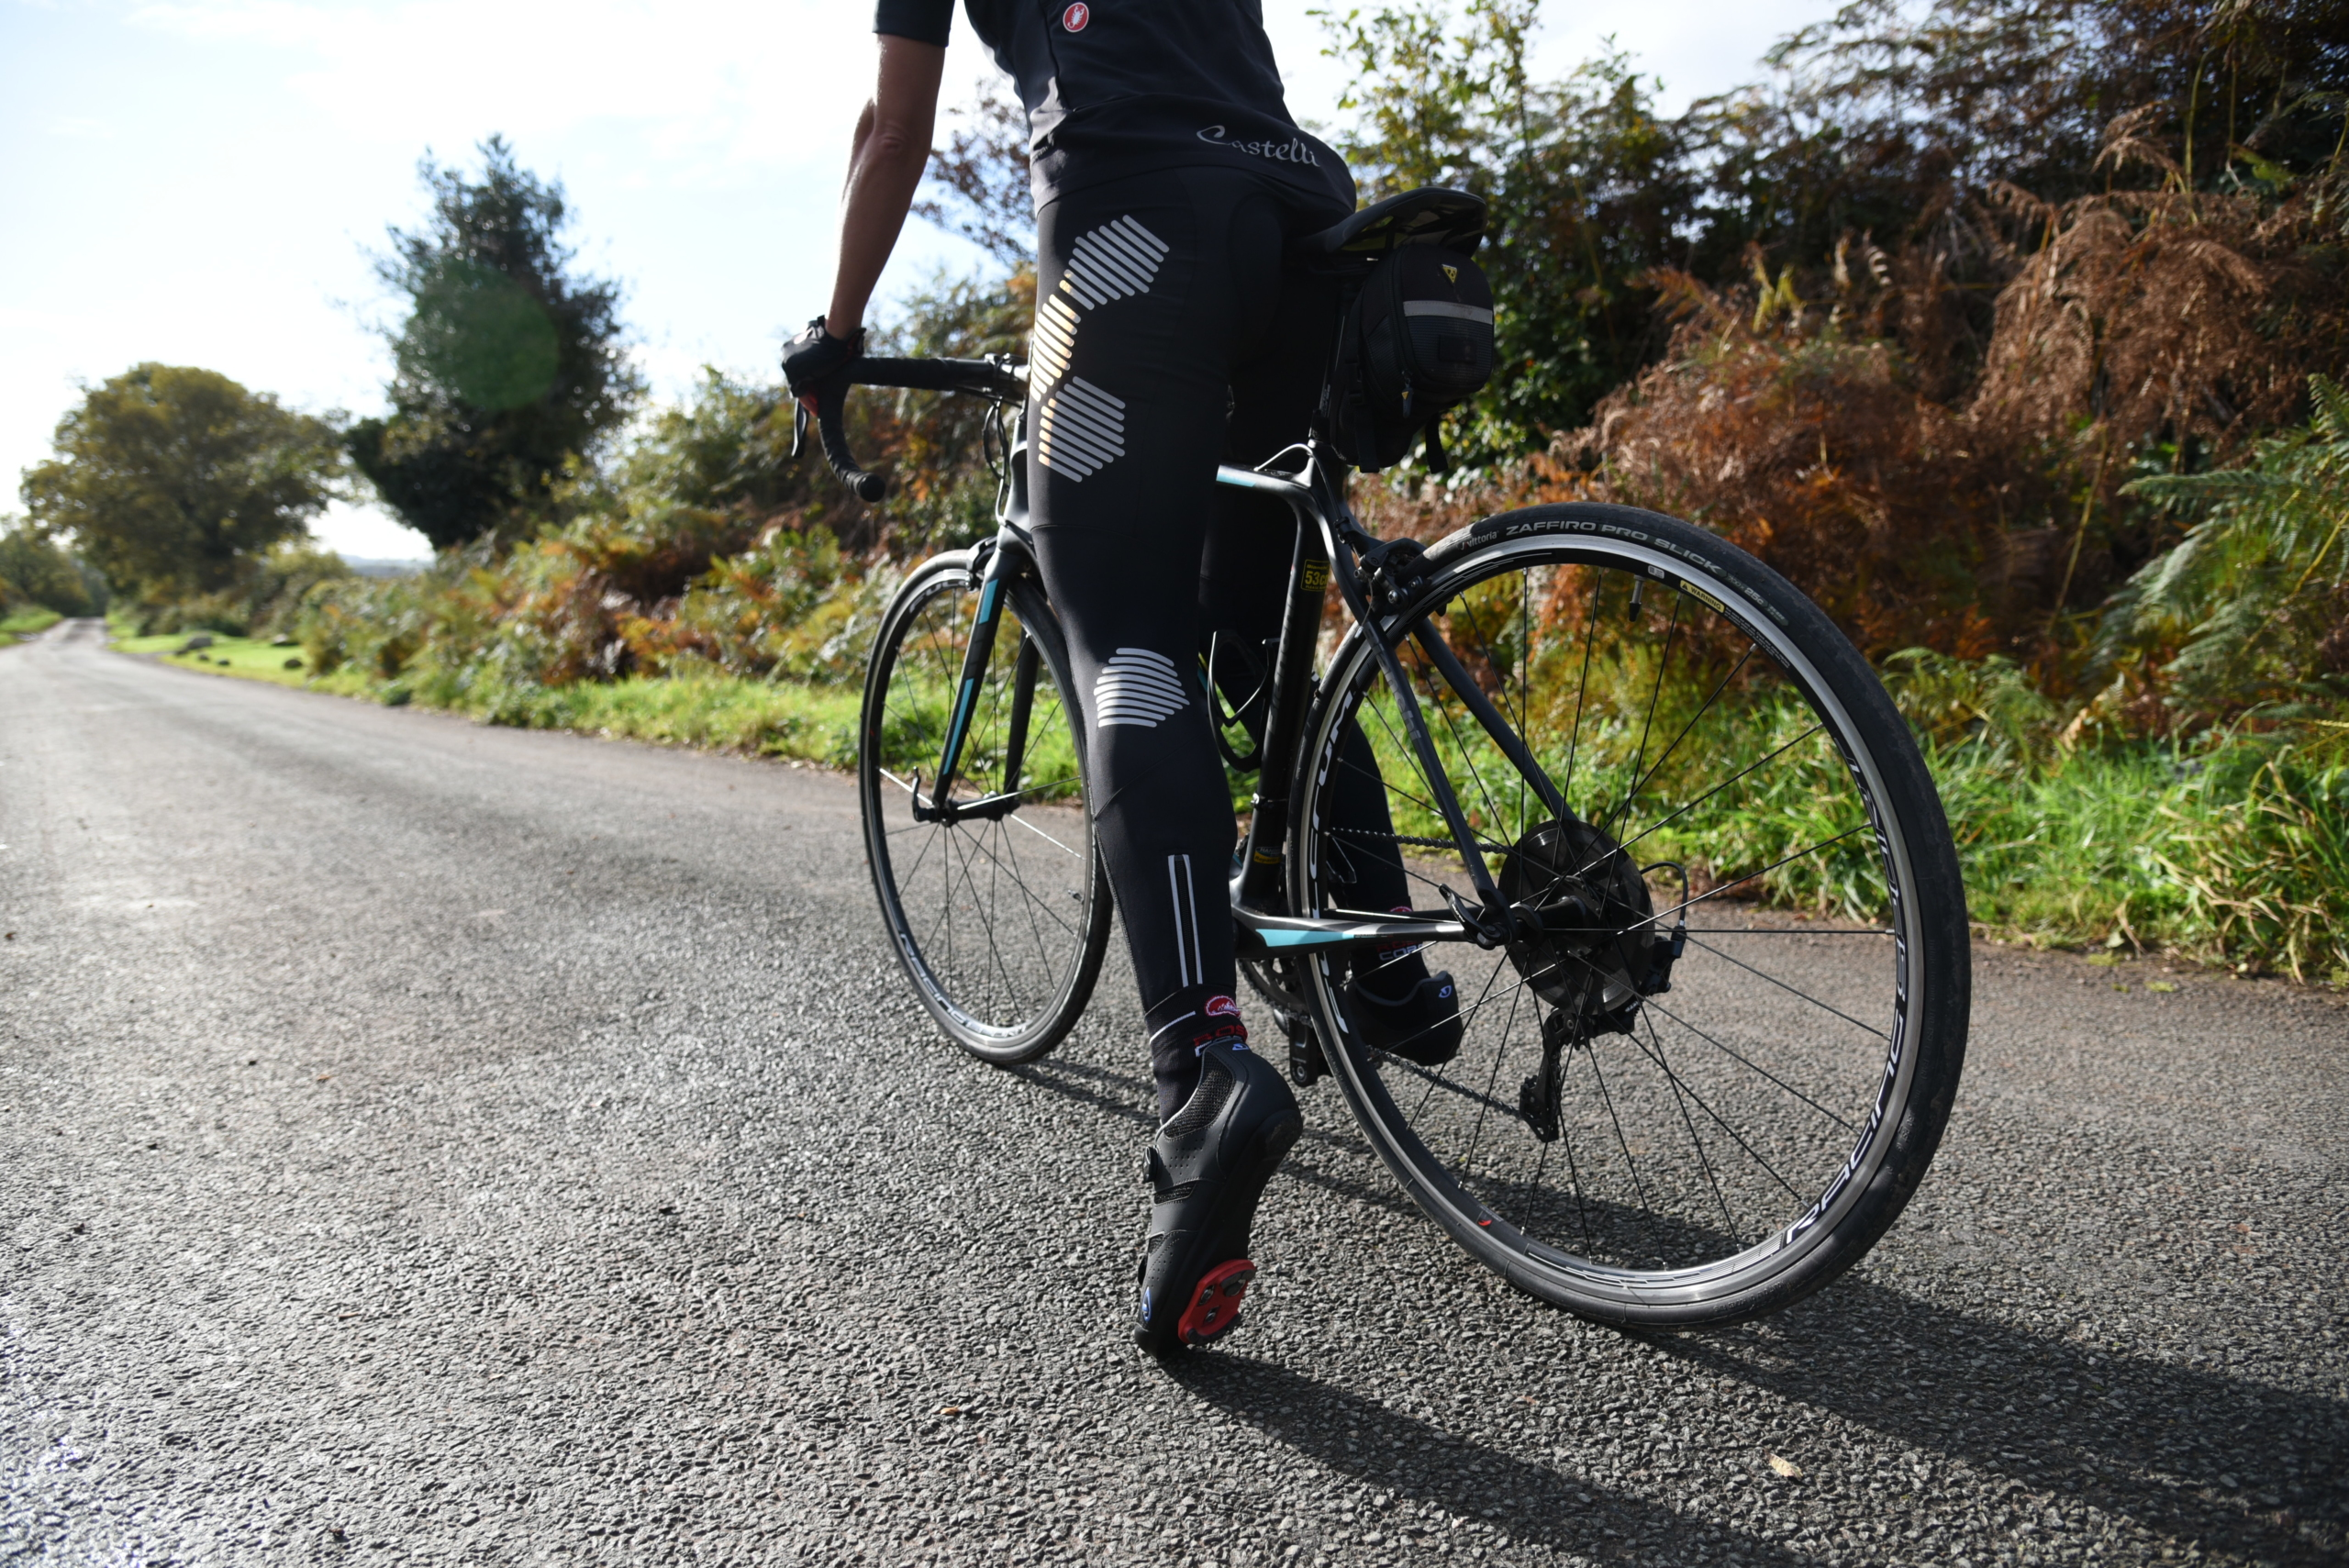 Our Top Tips for Cycling in Bythlon